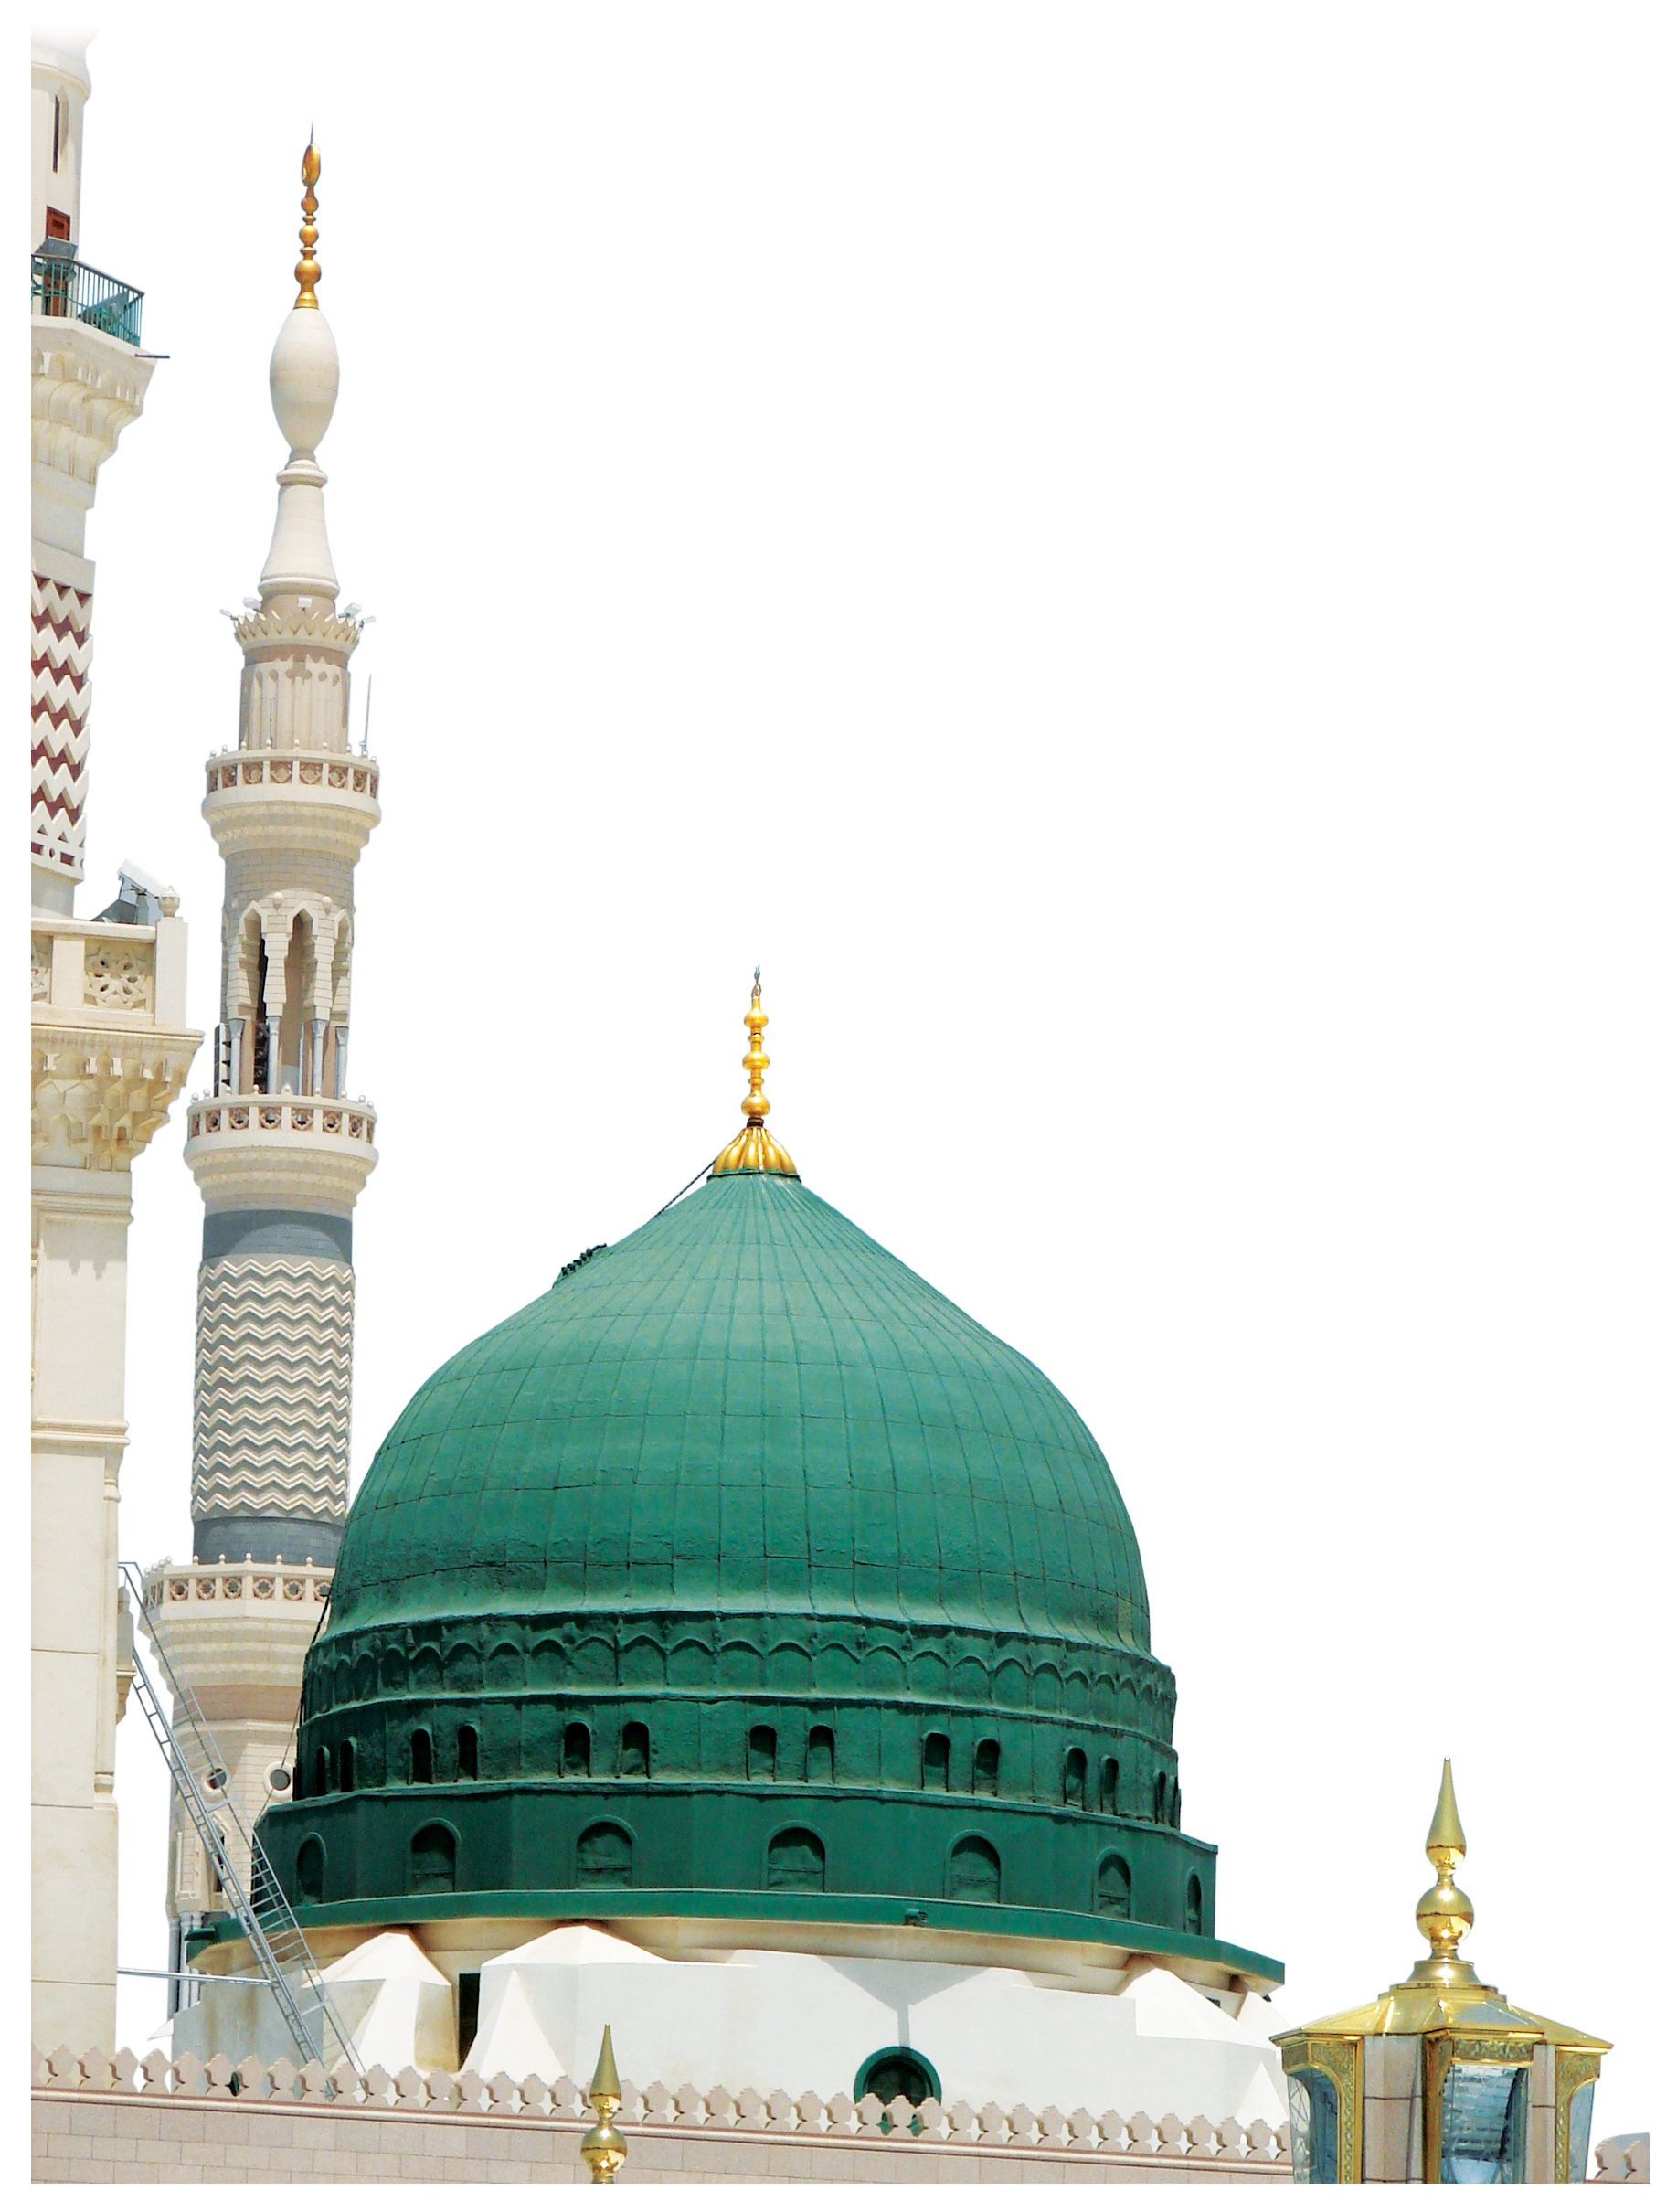 Mosque Png Free Vector Download image #45535